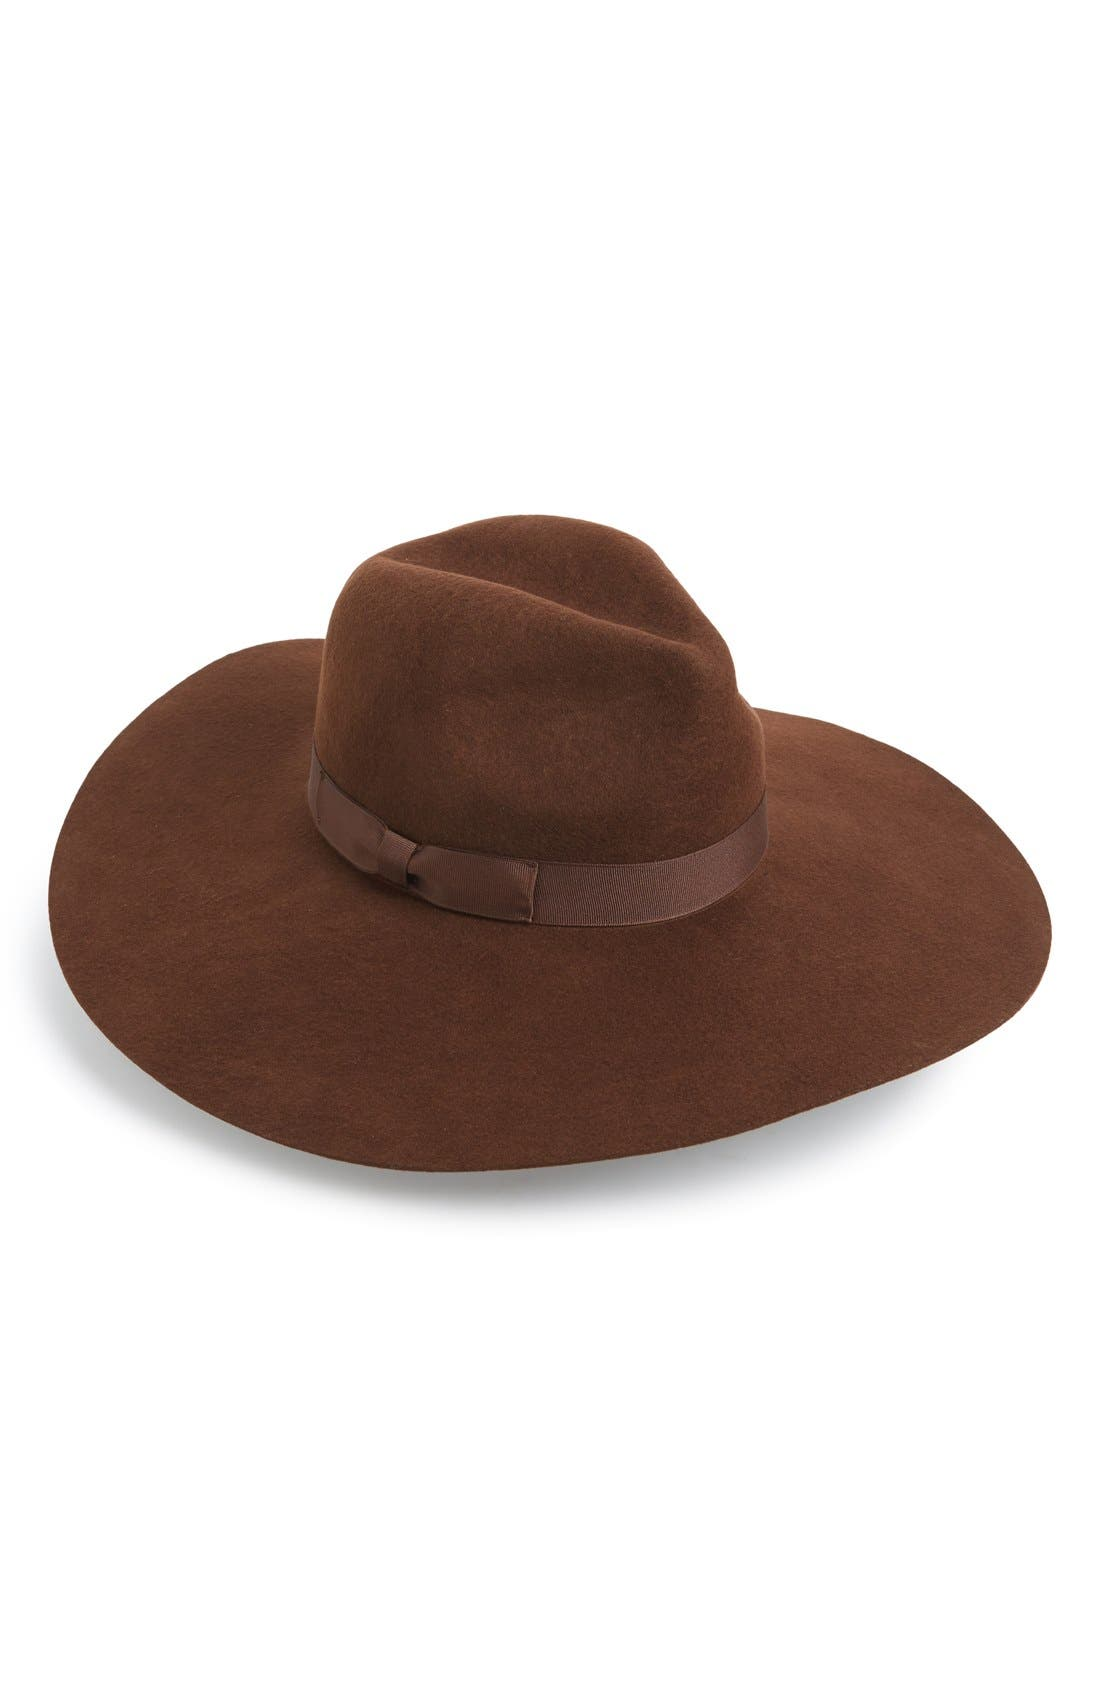 Alternate Image 1 Selected - Lack of Color 'Montana Coco' Floppy Felt Hat